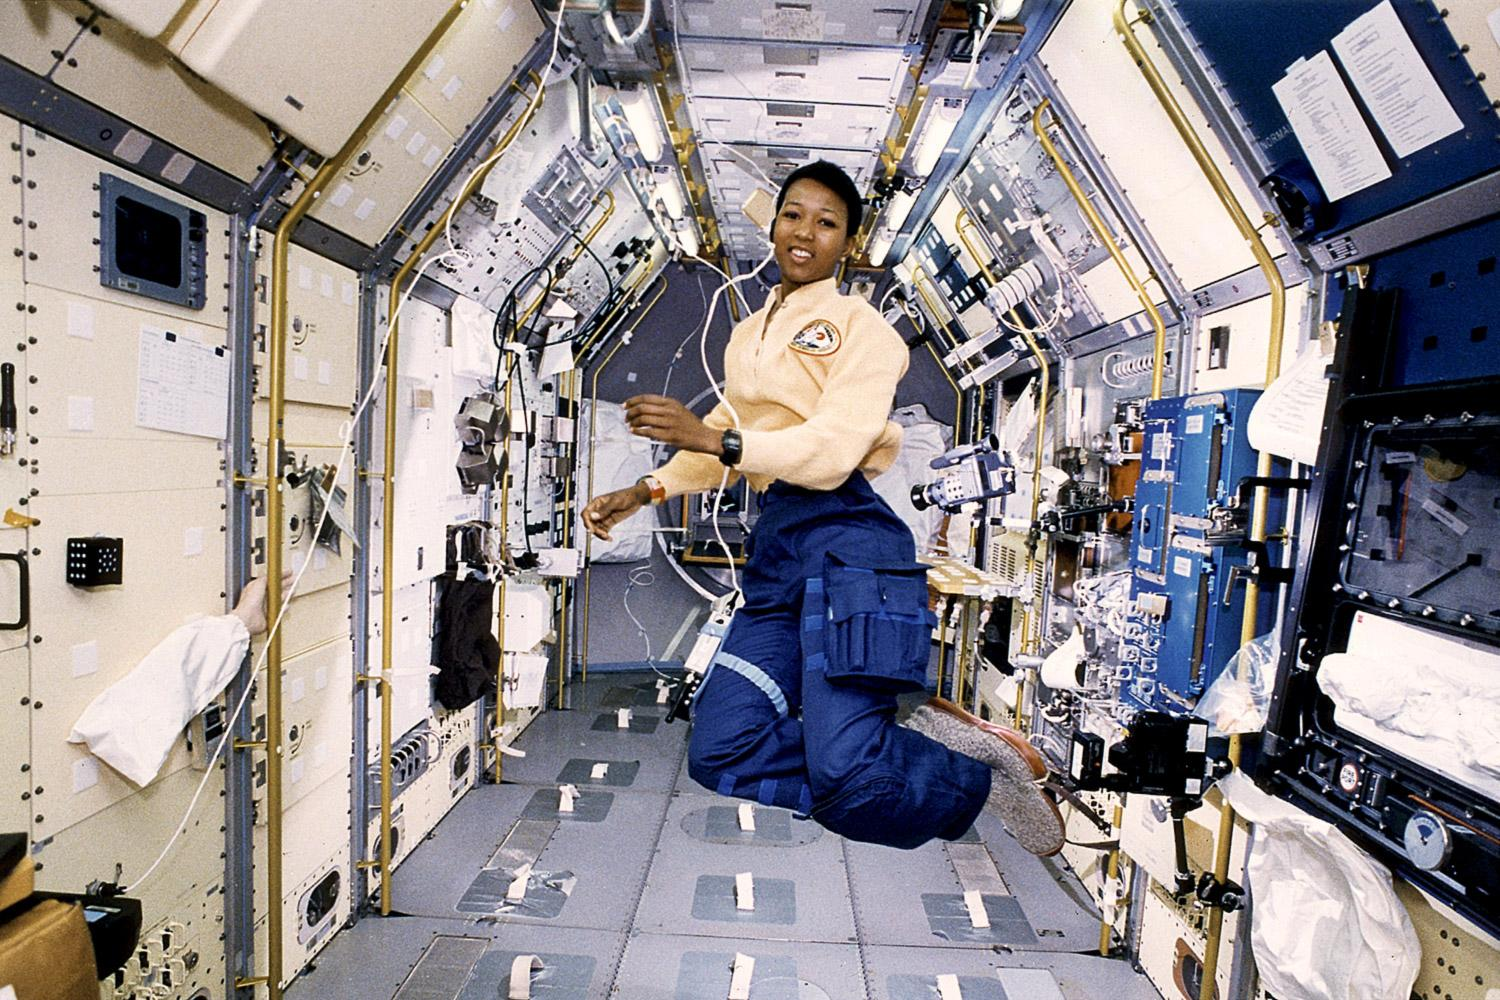 Mae Jemison, the first African-American woman in space, champions the union of the arts, social sciences and physical sciences in higher education as mutually reinforcing bodies of knowledge.